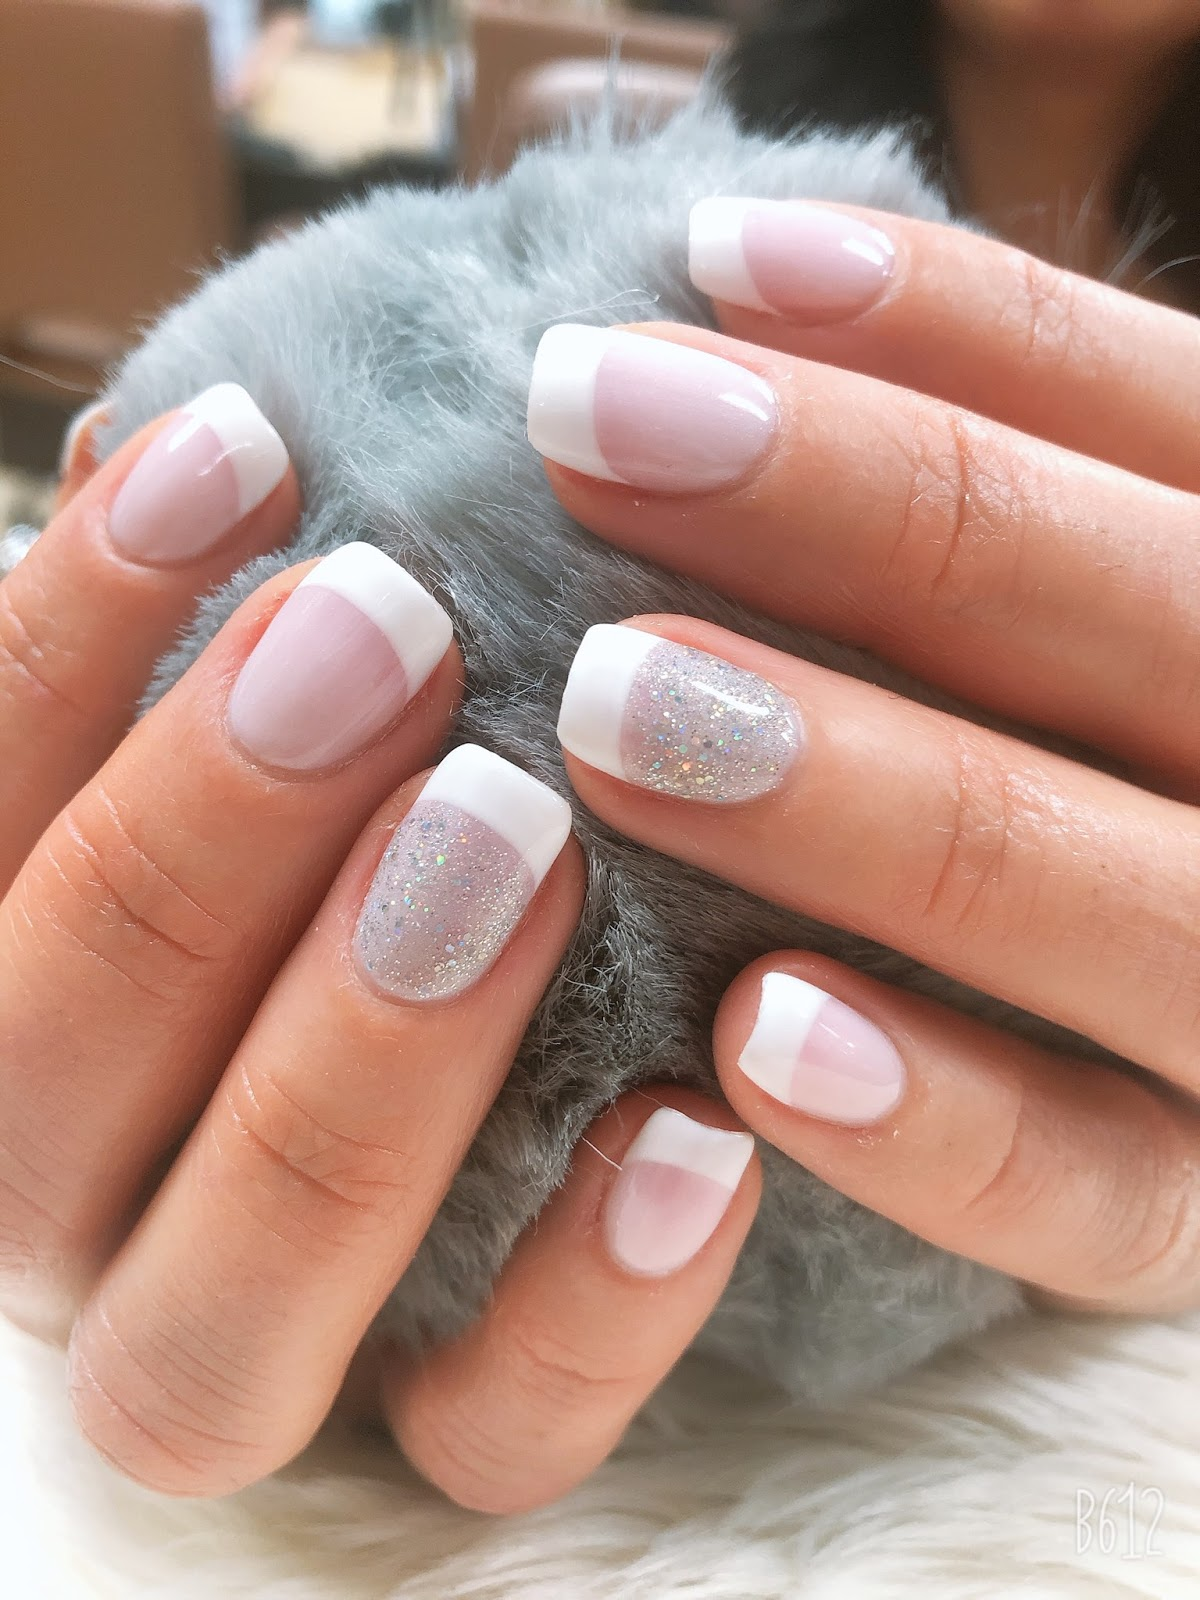 TLC Nail Lounge | Nail salon 93101 | Lower State Santa Barbara